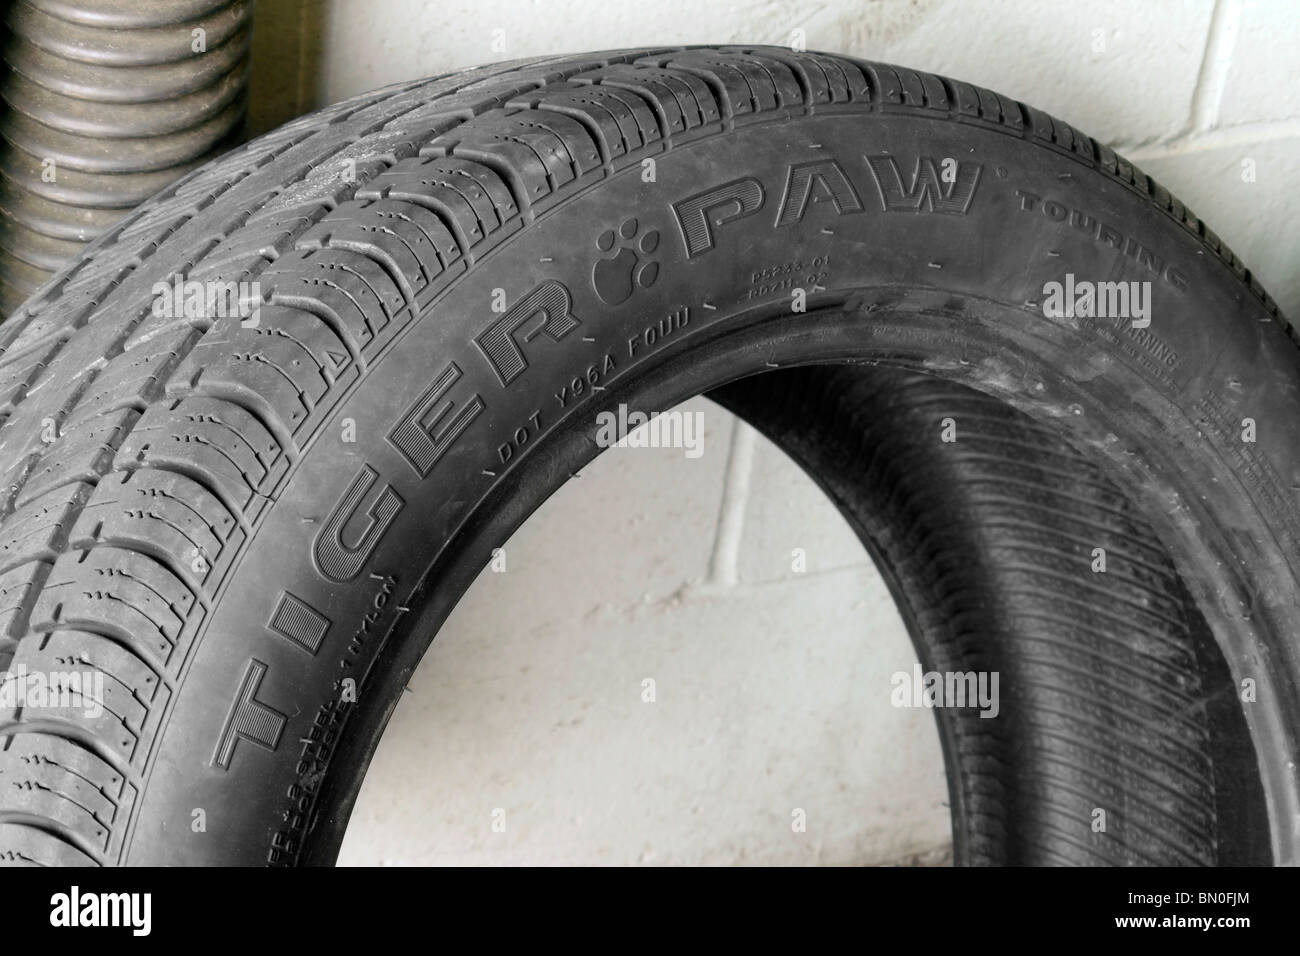 Tiger Paw brand touring tire - Stock Image